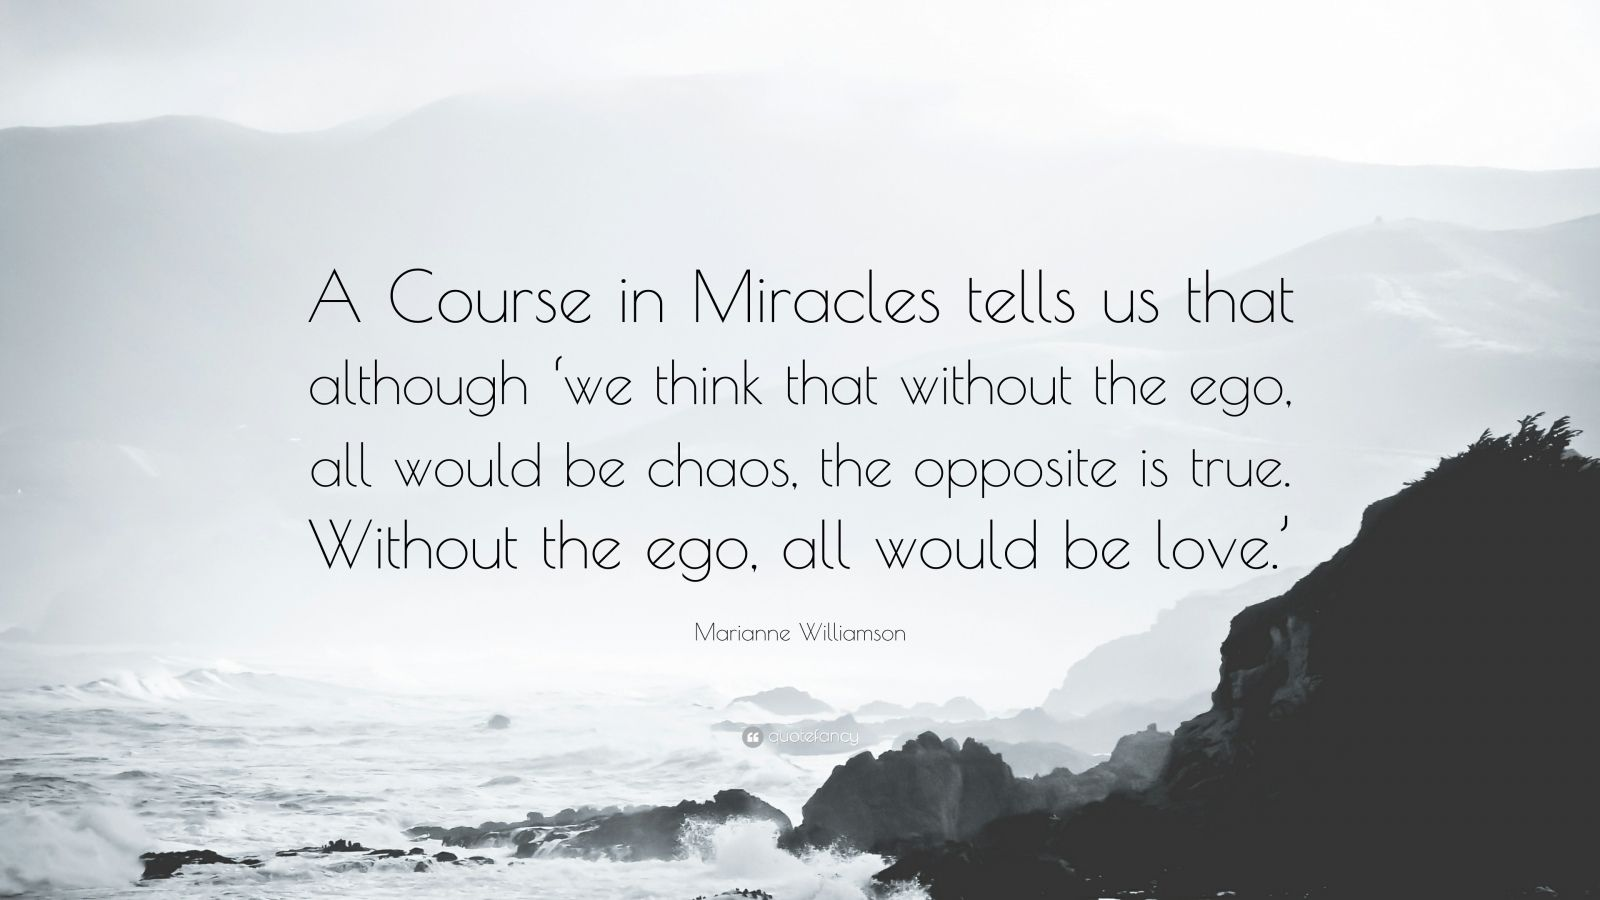 """Marianne Williamson Quote: """"A Course in Miracles tells us that although 'we think that without the ego, all would be chaos, the opposite is true. Without the ego, all would be love.'"""""""